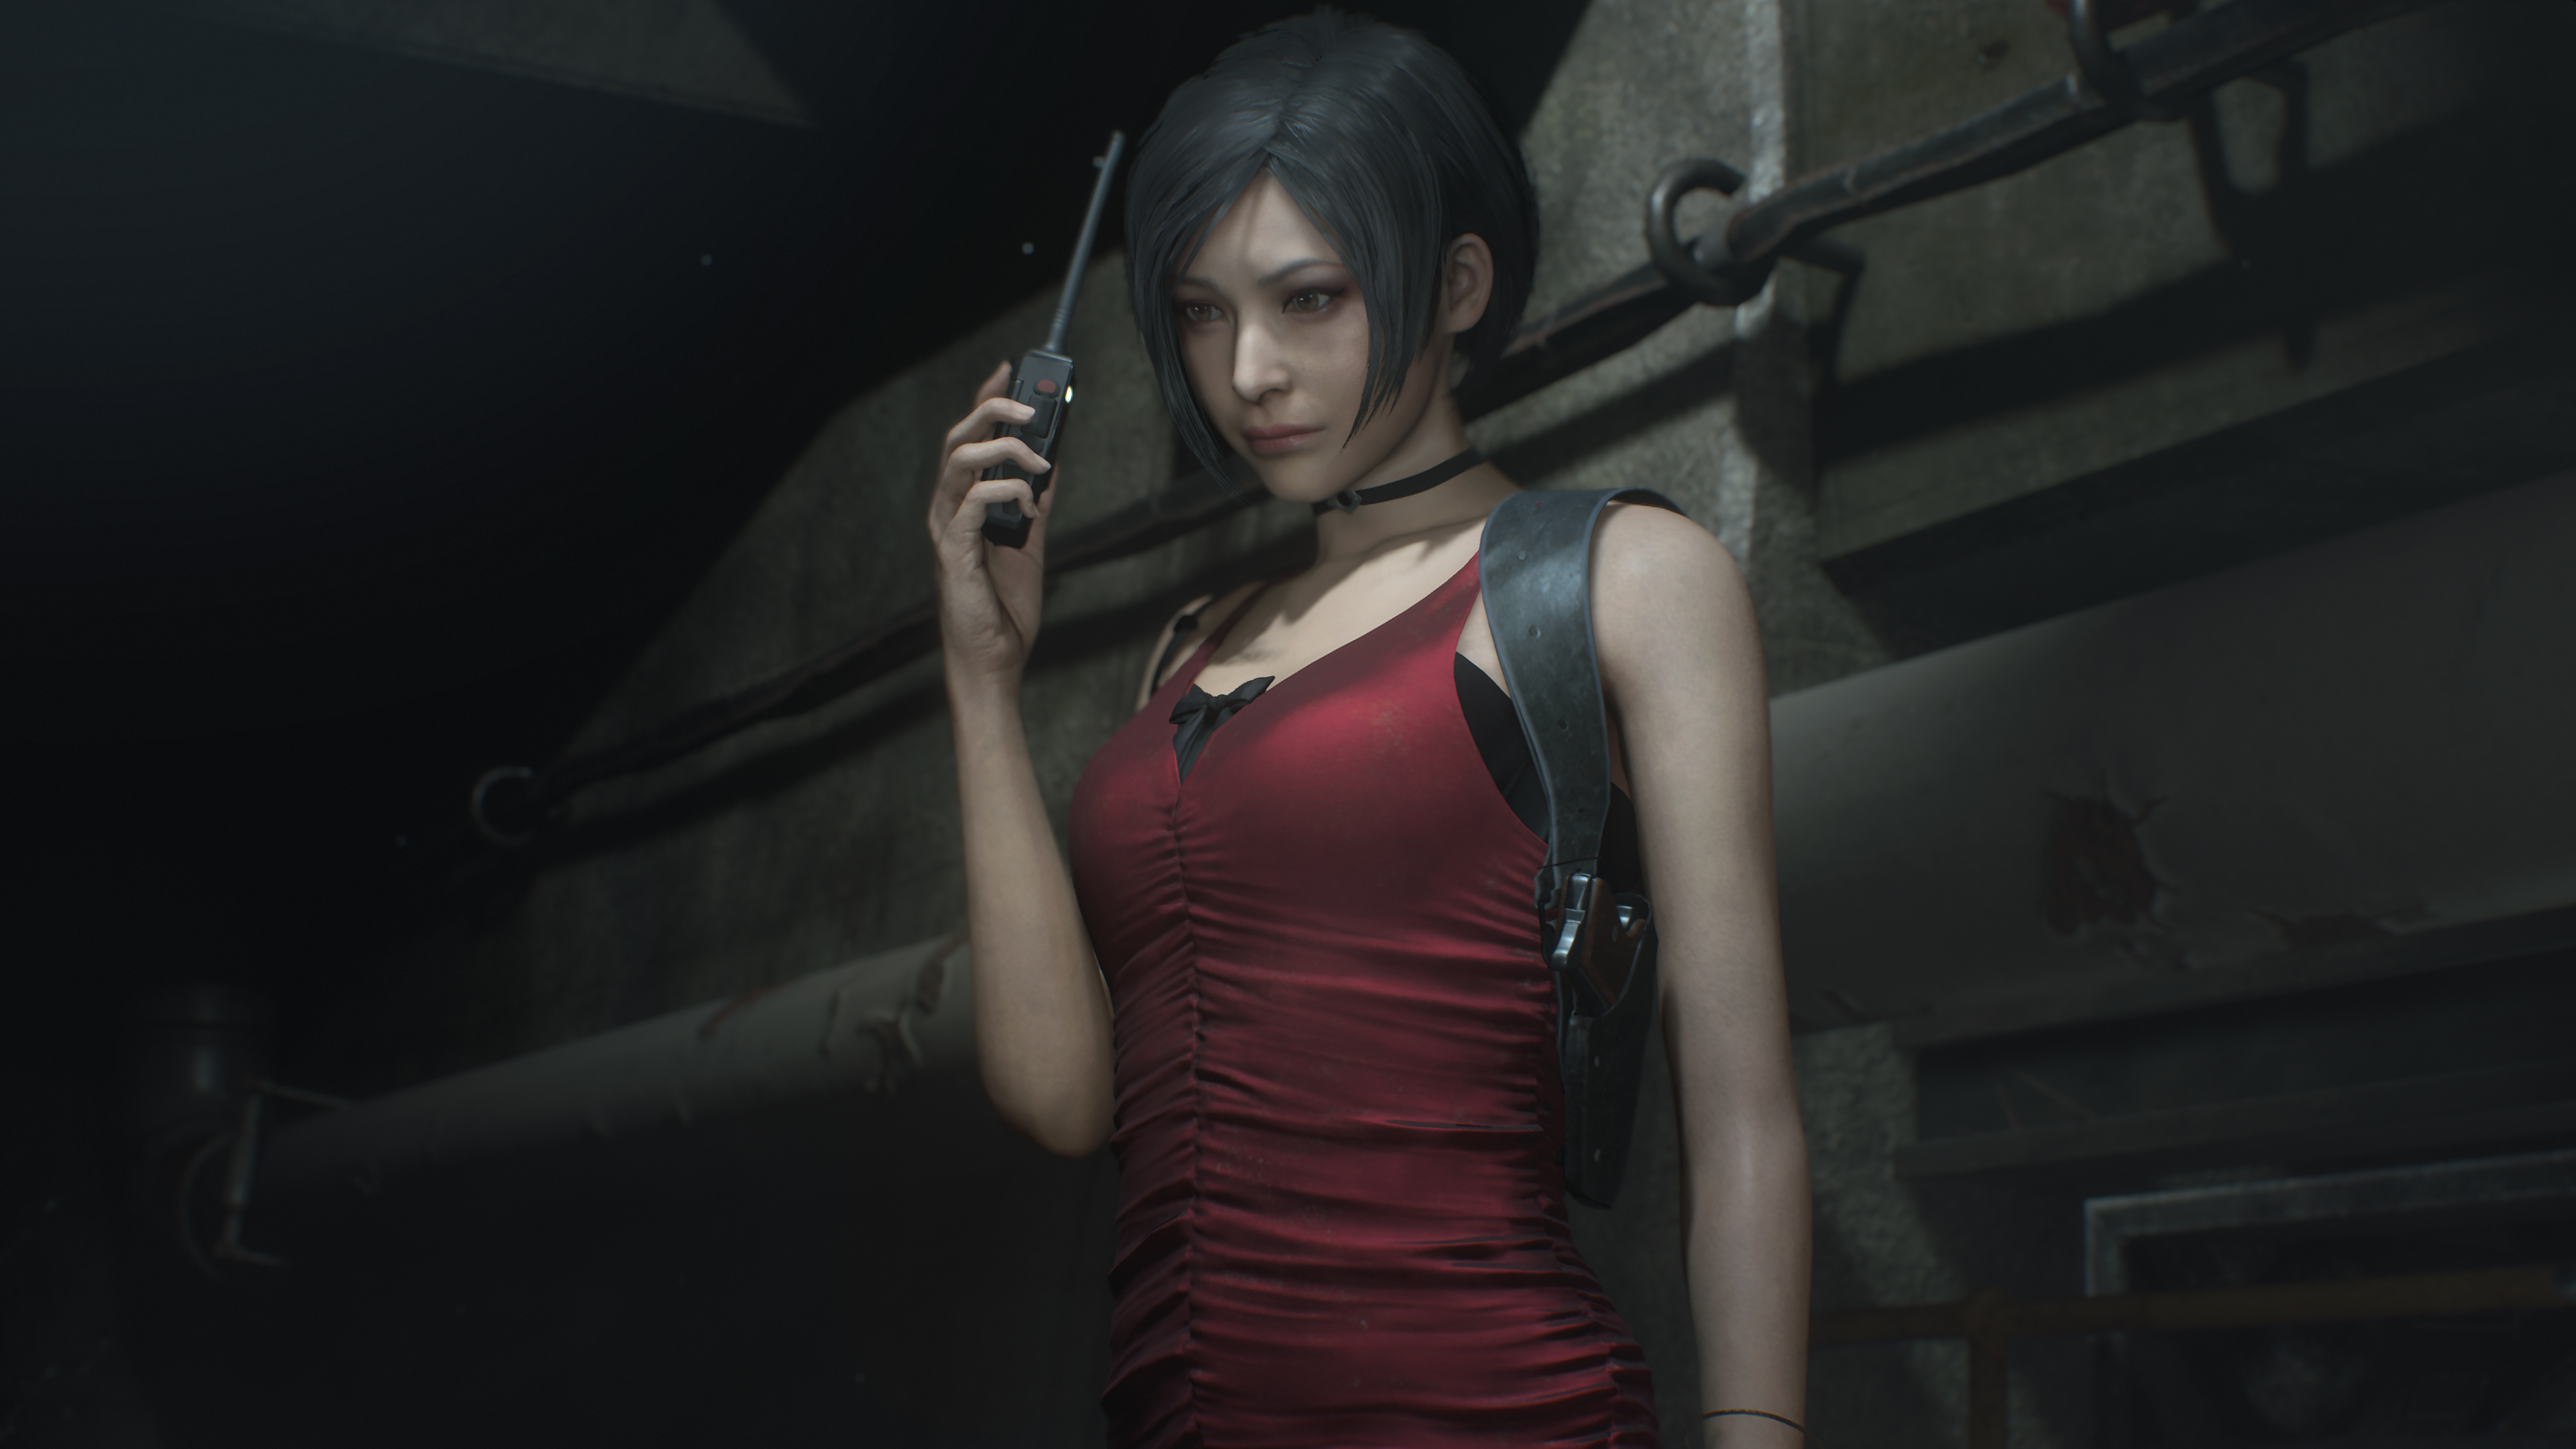 Wallpaper 4k Claire Redfield Resident Evil 2 2019 2019 Games